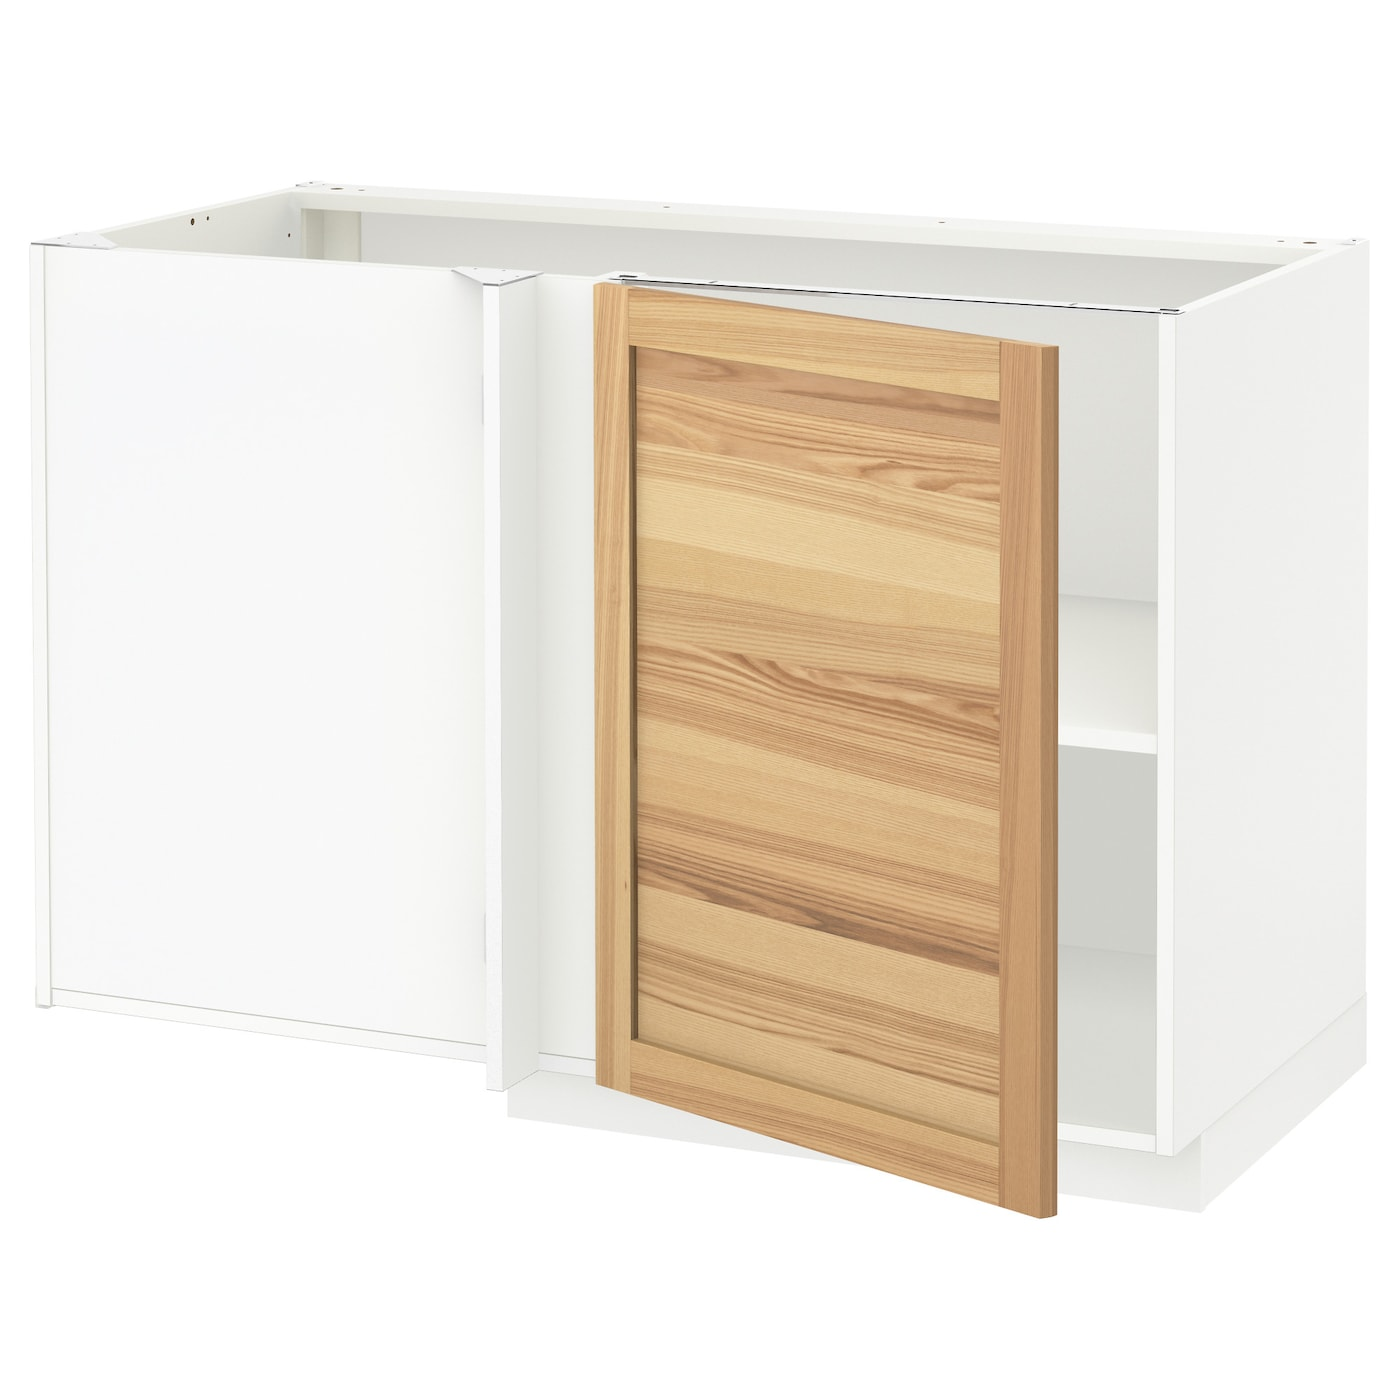 metod corner base cabinet with shelf white torhamn ash. Black Bedroom Furniture Sets. Home Design Ideas